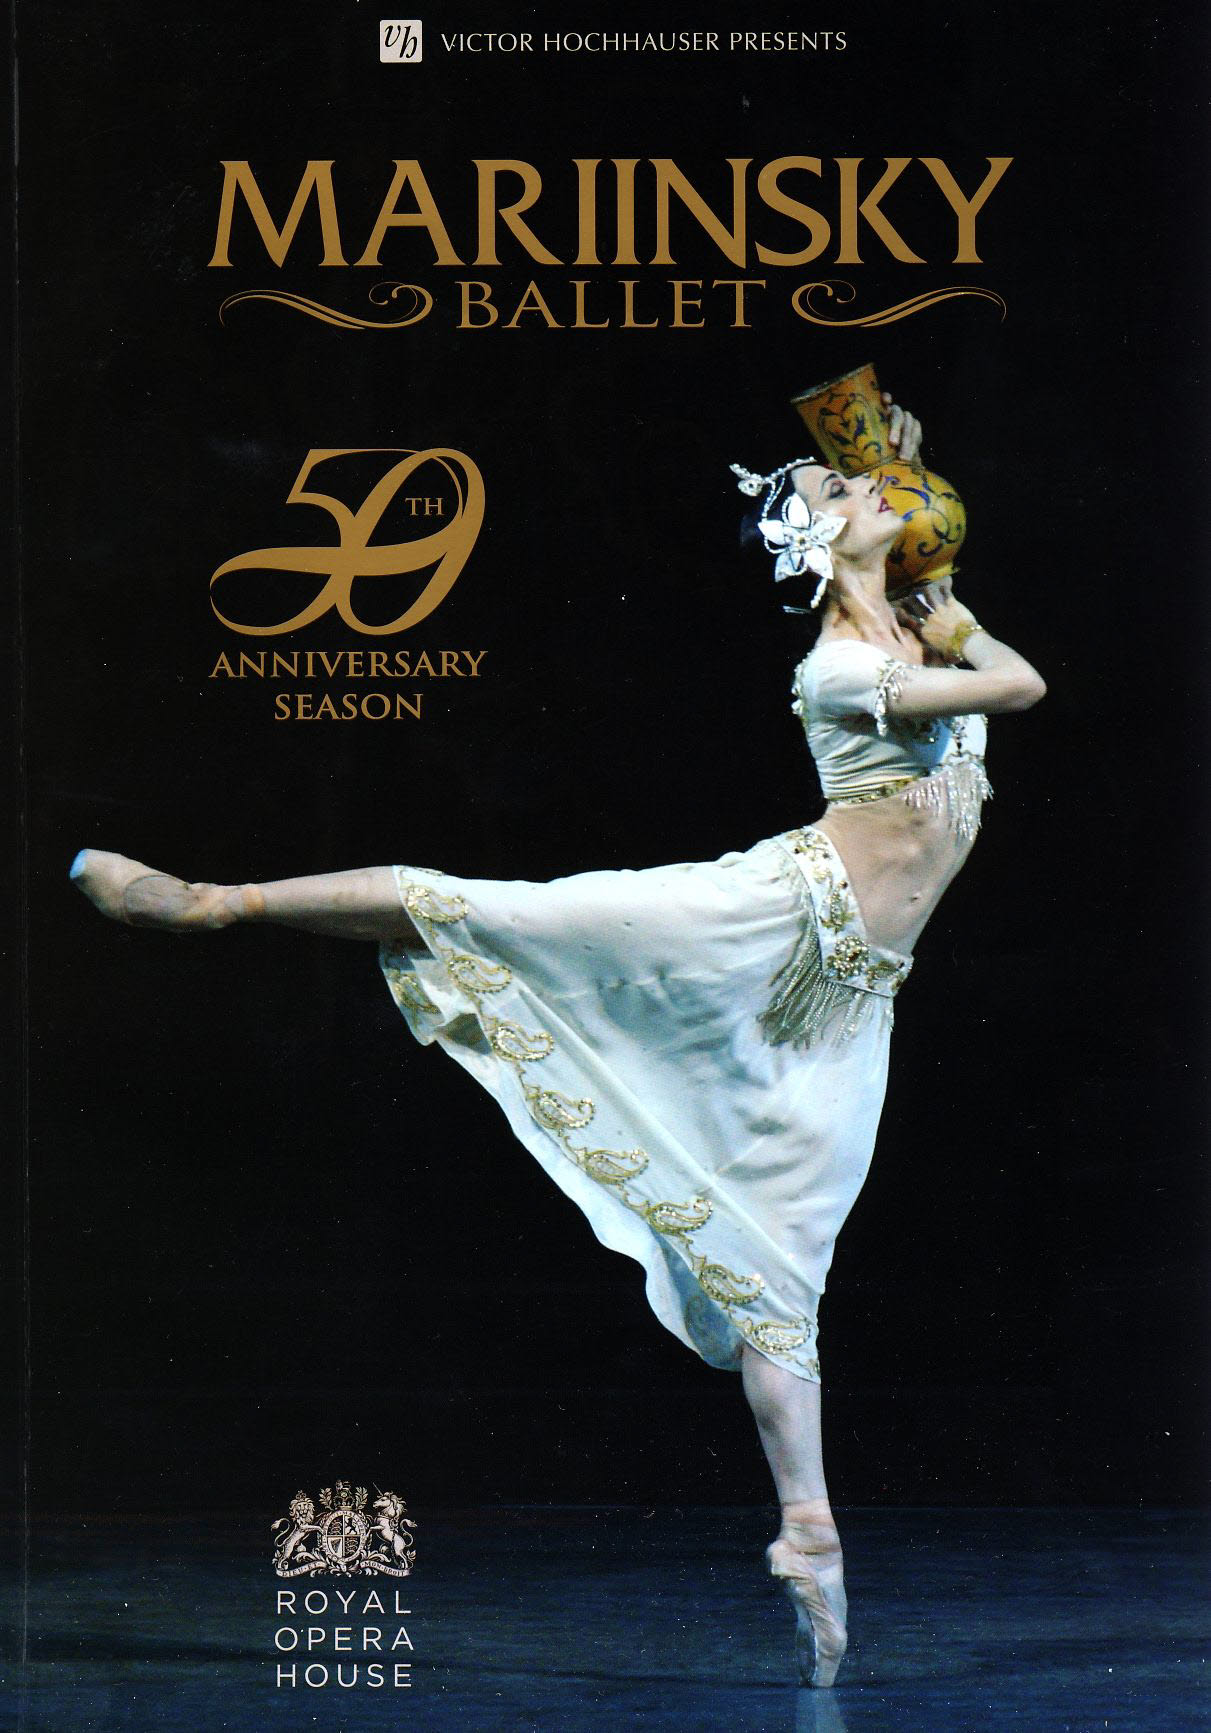 50TH Anniversary Season MARINSKY BALLET Royal Opera House 2011 Souvenir Programme refb101200 Pre-owned Programme in Good Condition. Measures approx 21cm x 29.5cm